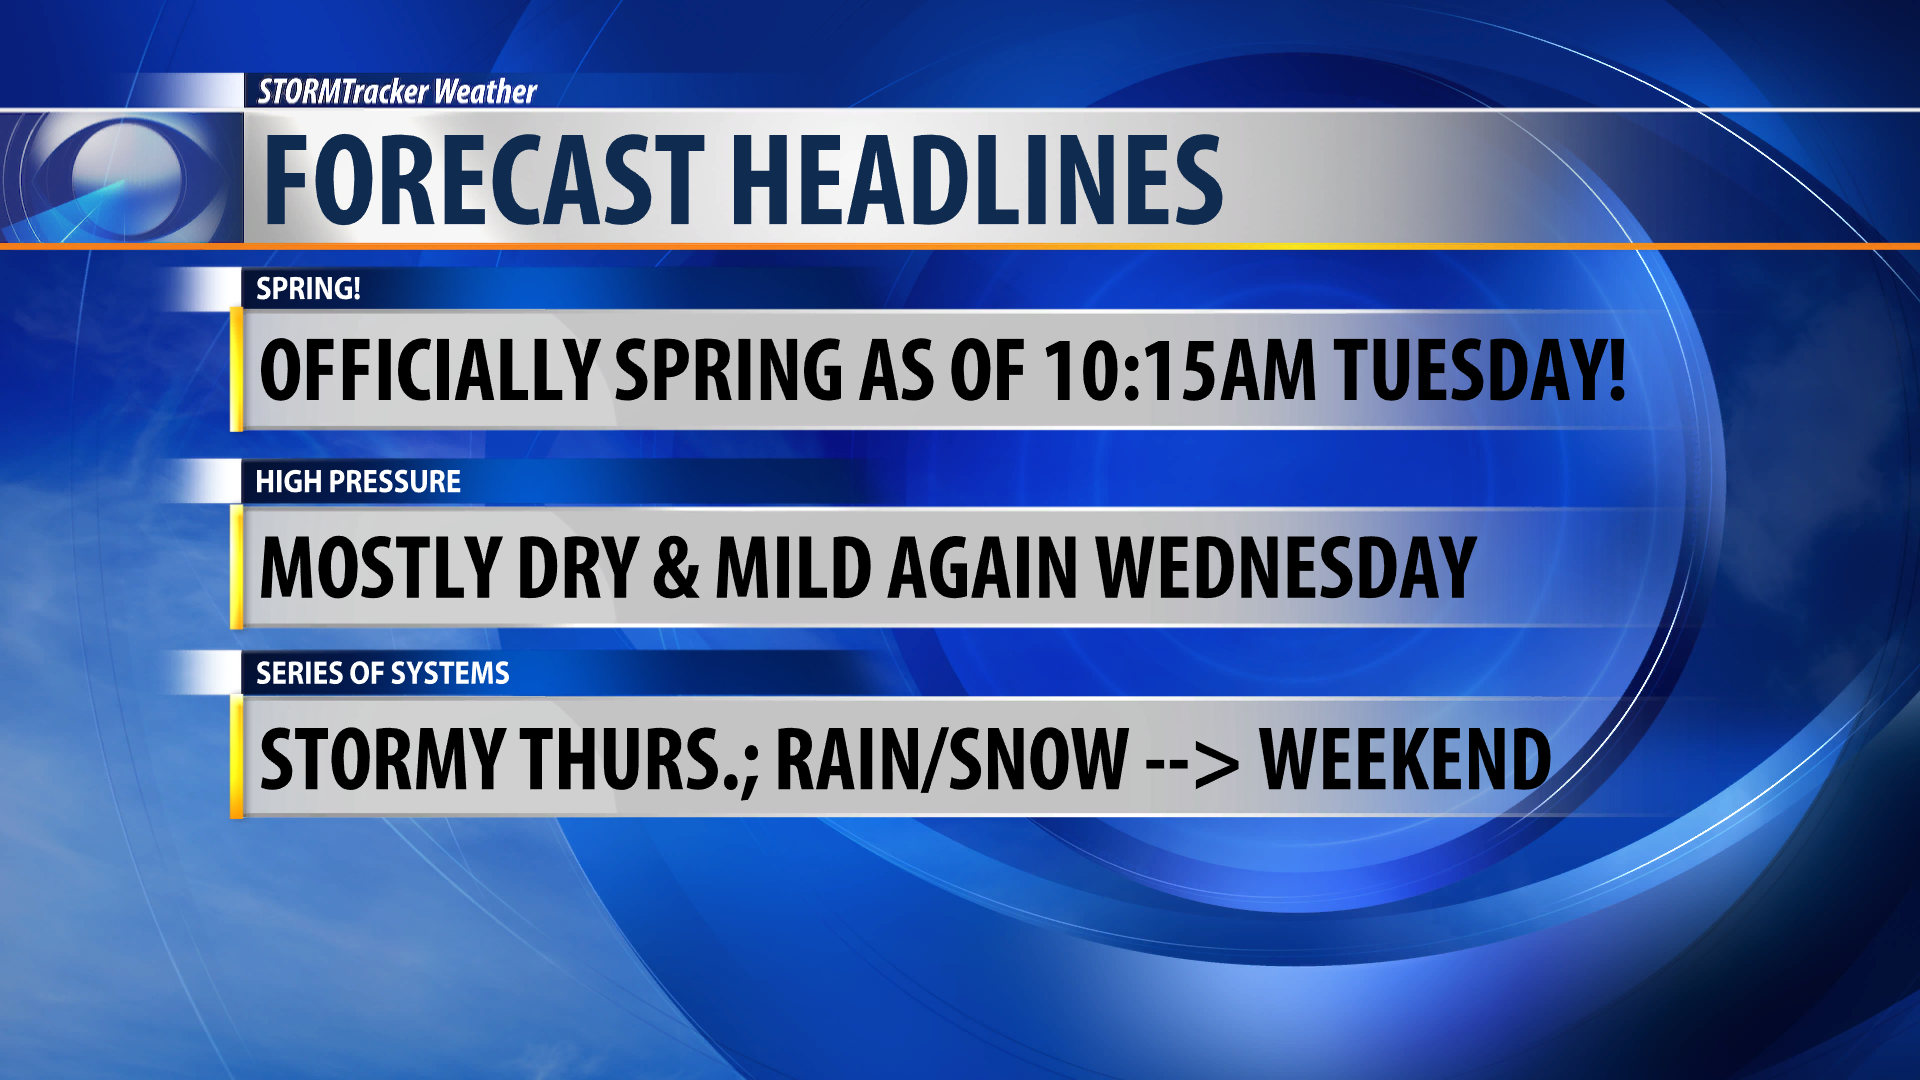 Spring arrives - with snow on the way for the mountains